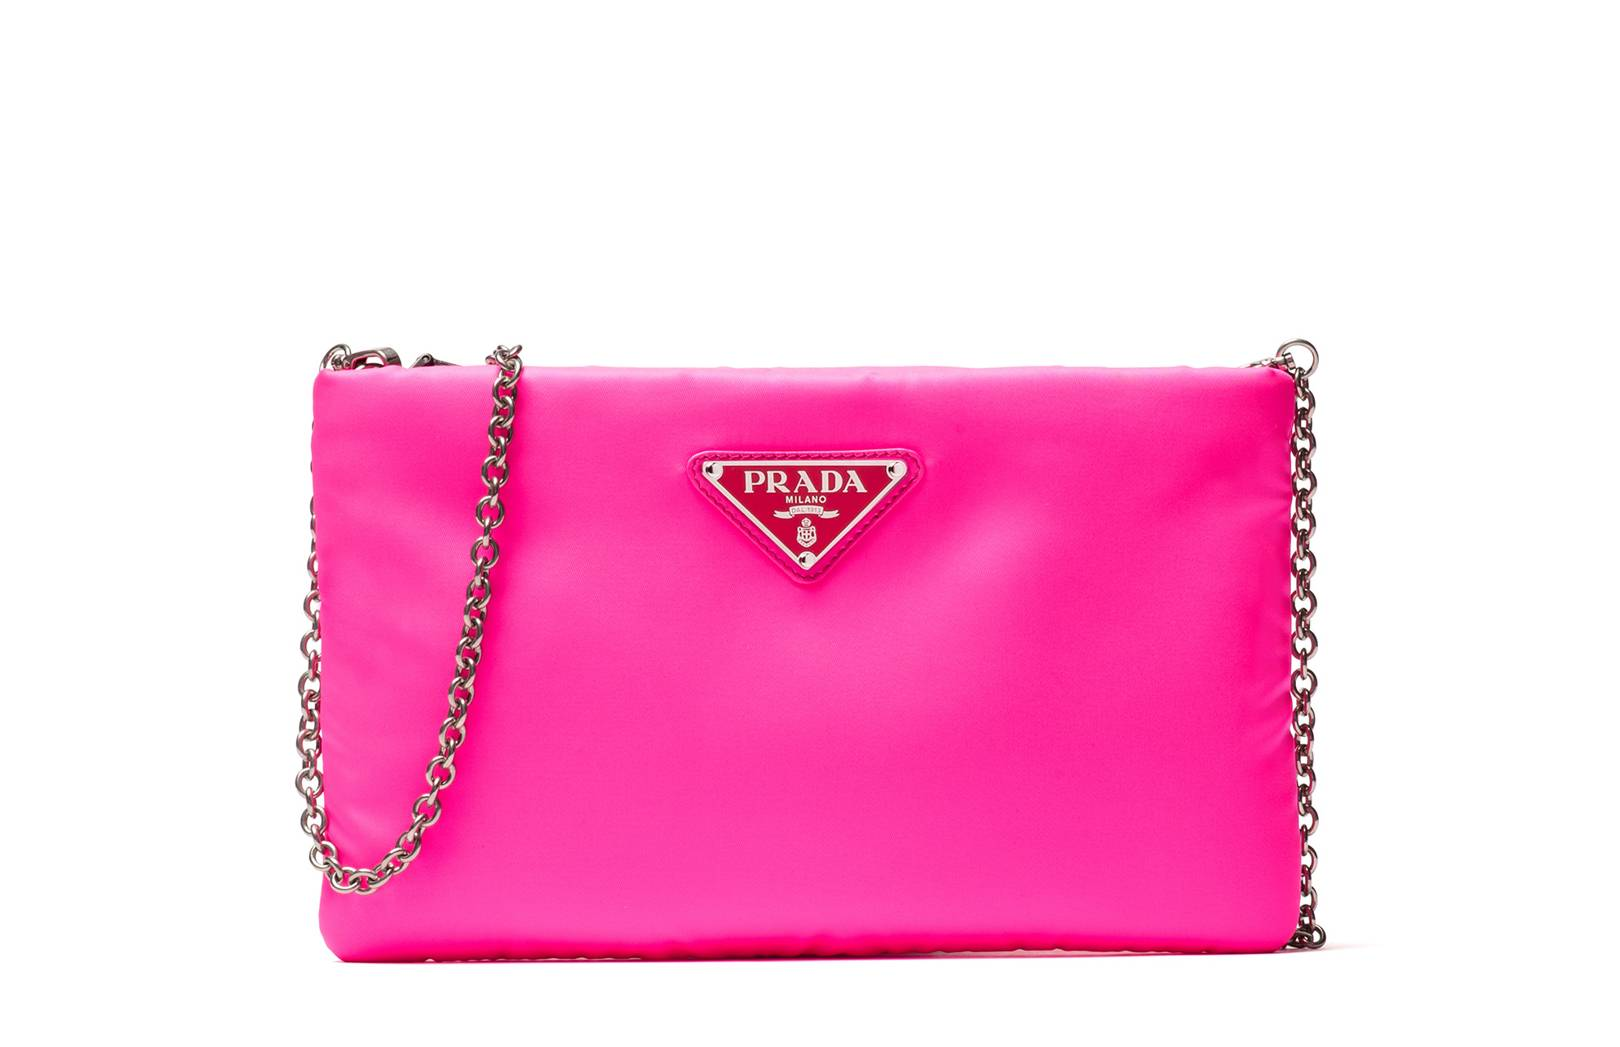 753427705fea The Best Pink Handbags To Buy Now   British Vogue